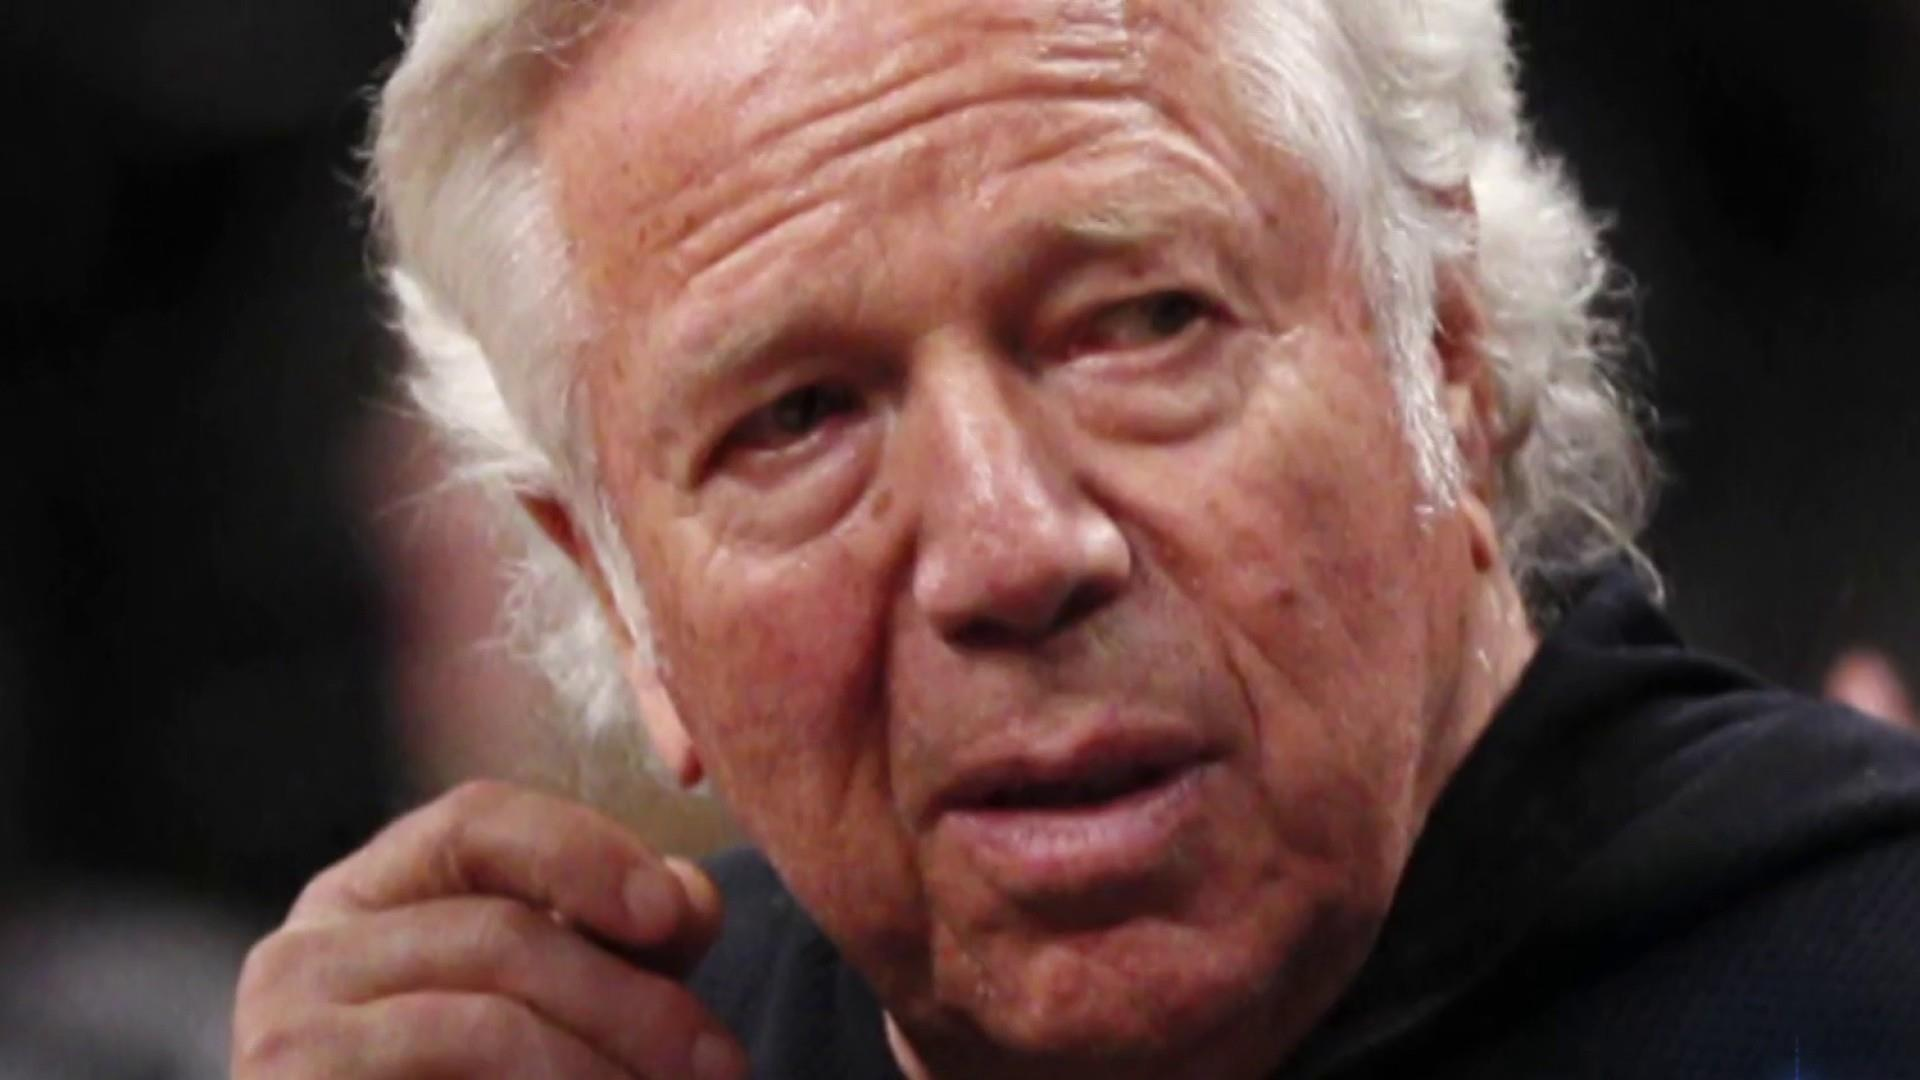 Prosecutors continue push for Robert Kraft surveillance video to go public